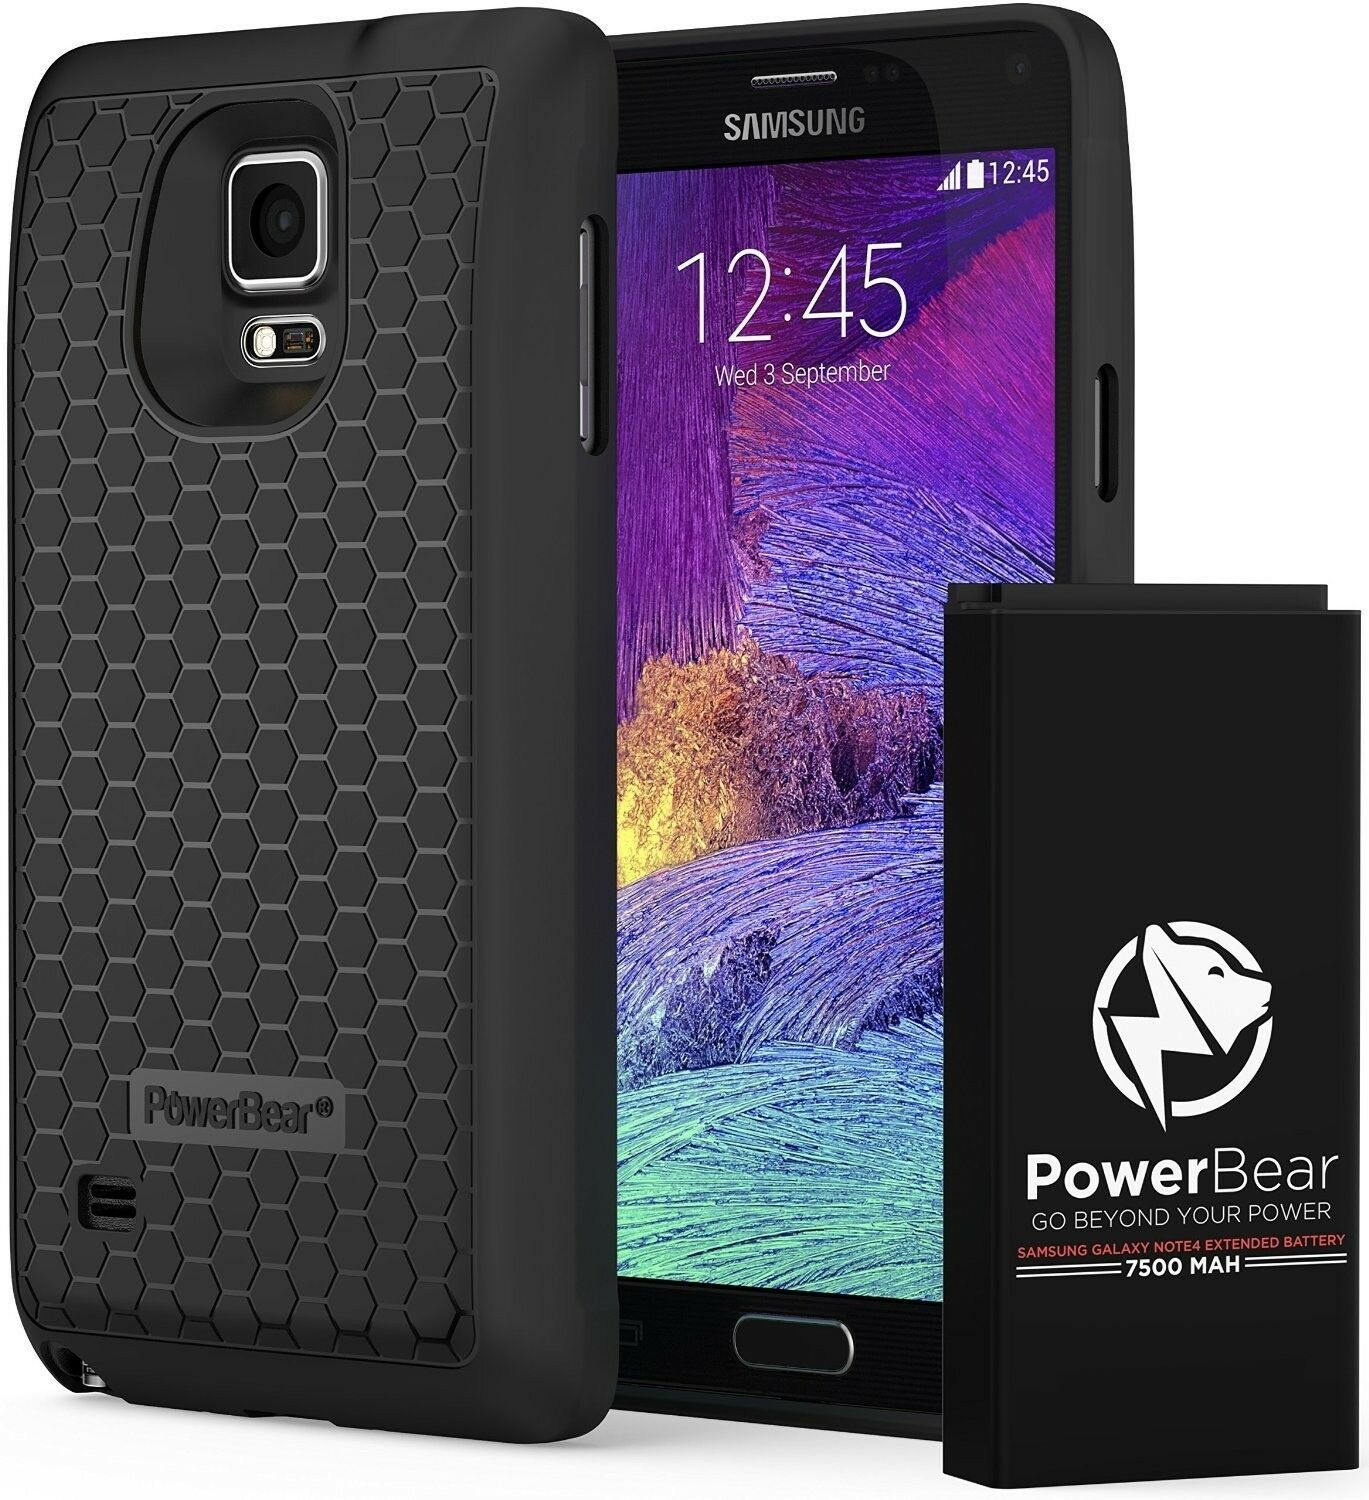 Powerbear Samsung Galaxy Note 4 Extended Battery 7500mah Back Cover 2 Original 3600mah 1 Of 7only Available